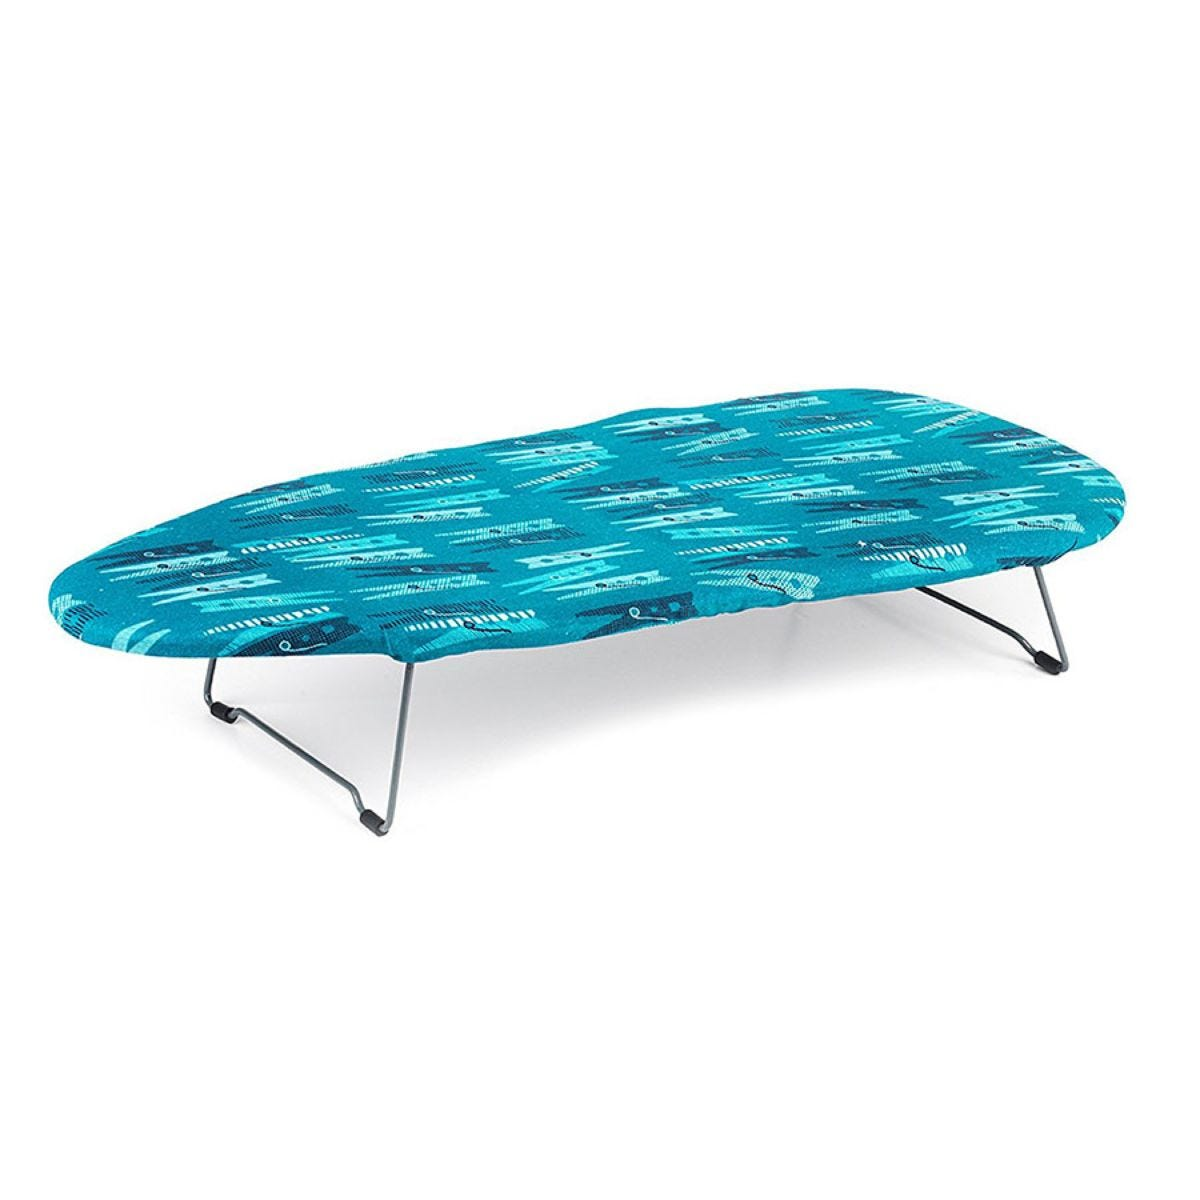 Beldray 73 x 33cm Table Top Ironing Board - Peg Print